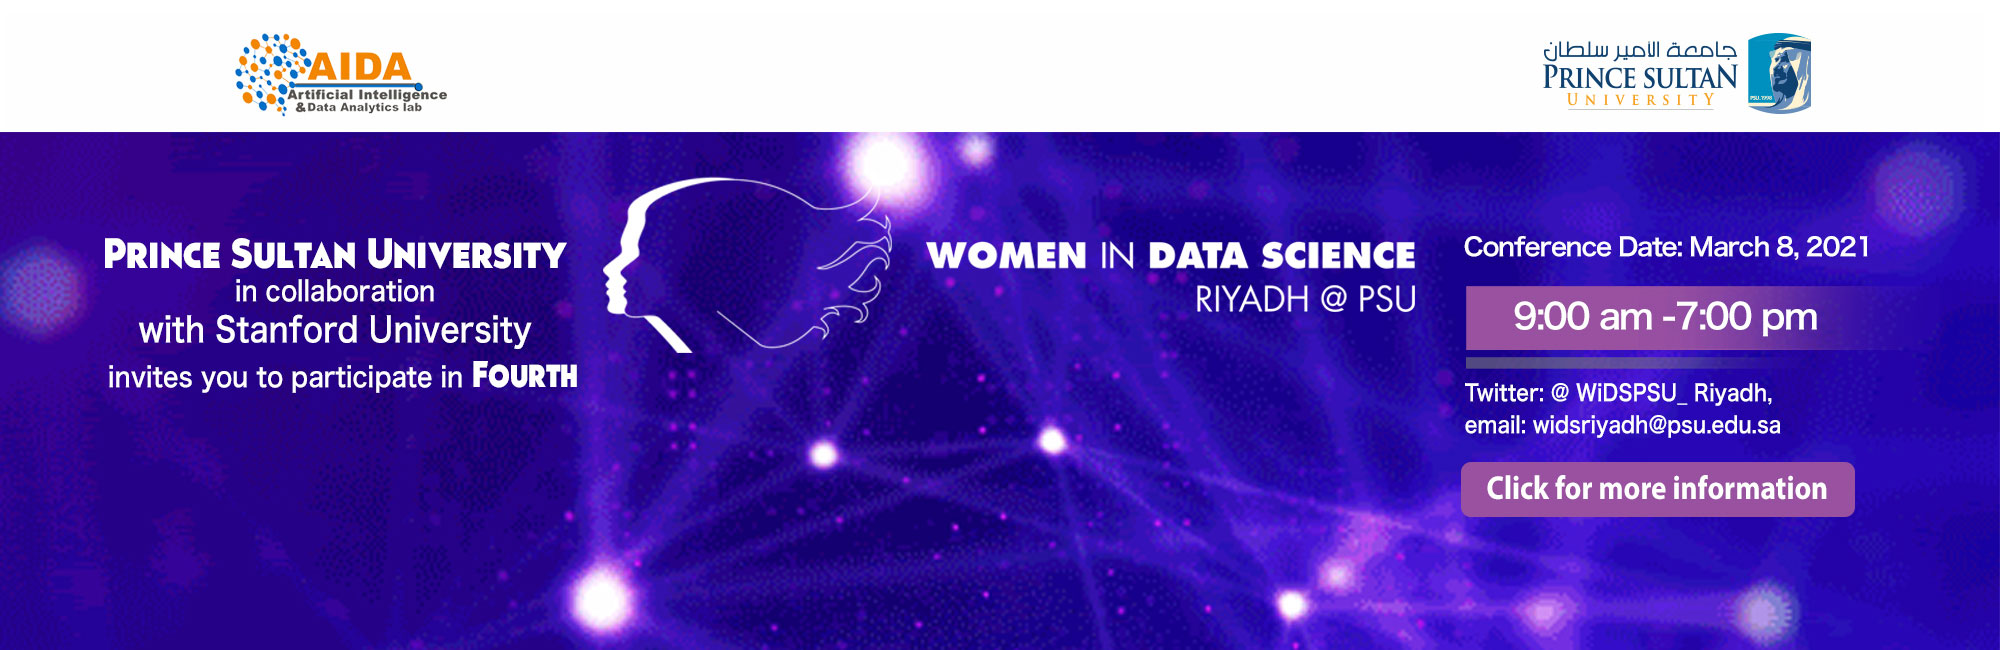 Fourth Women in Data Science